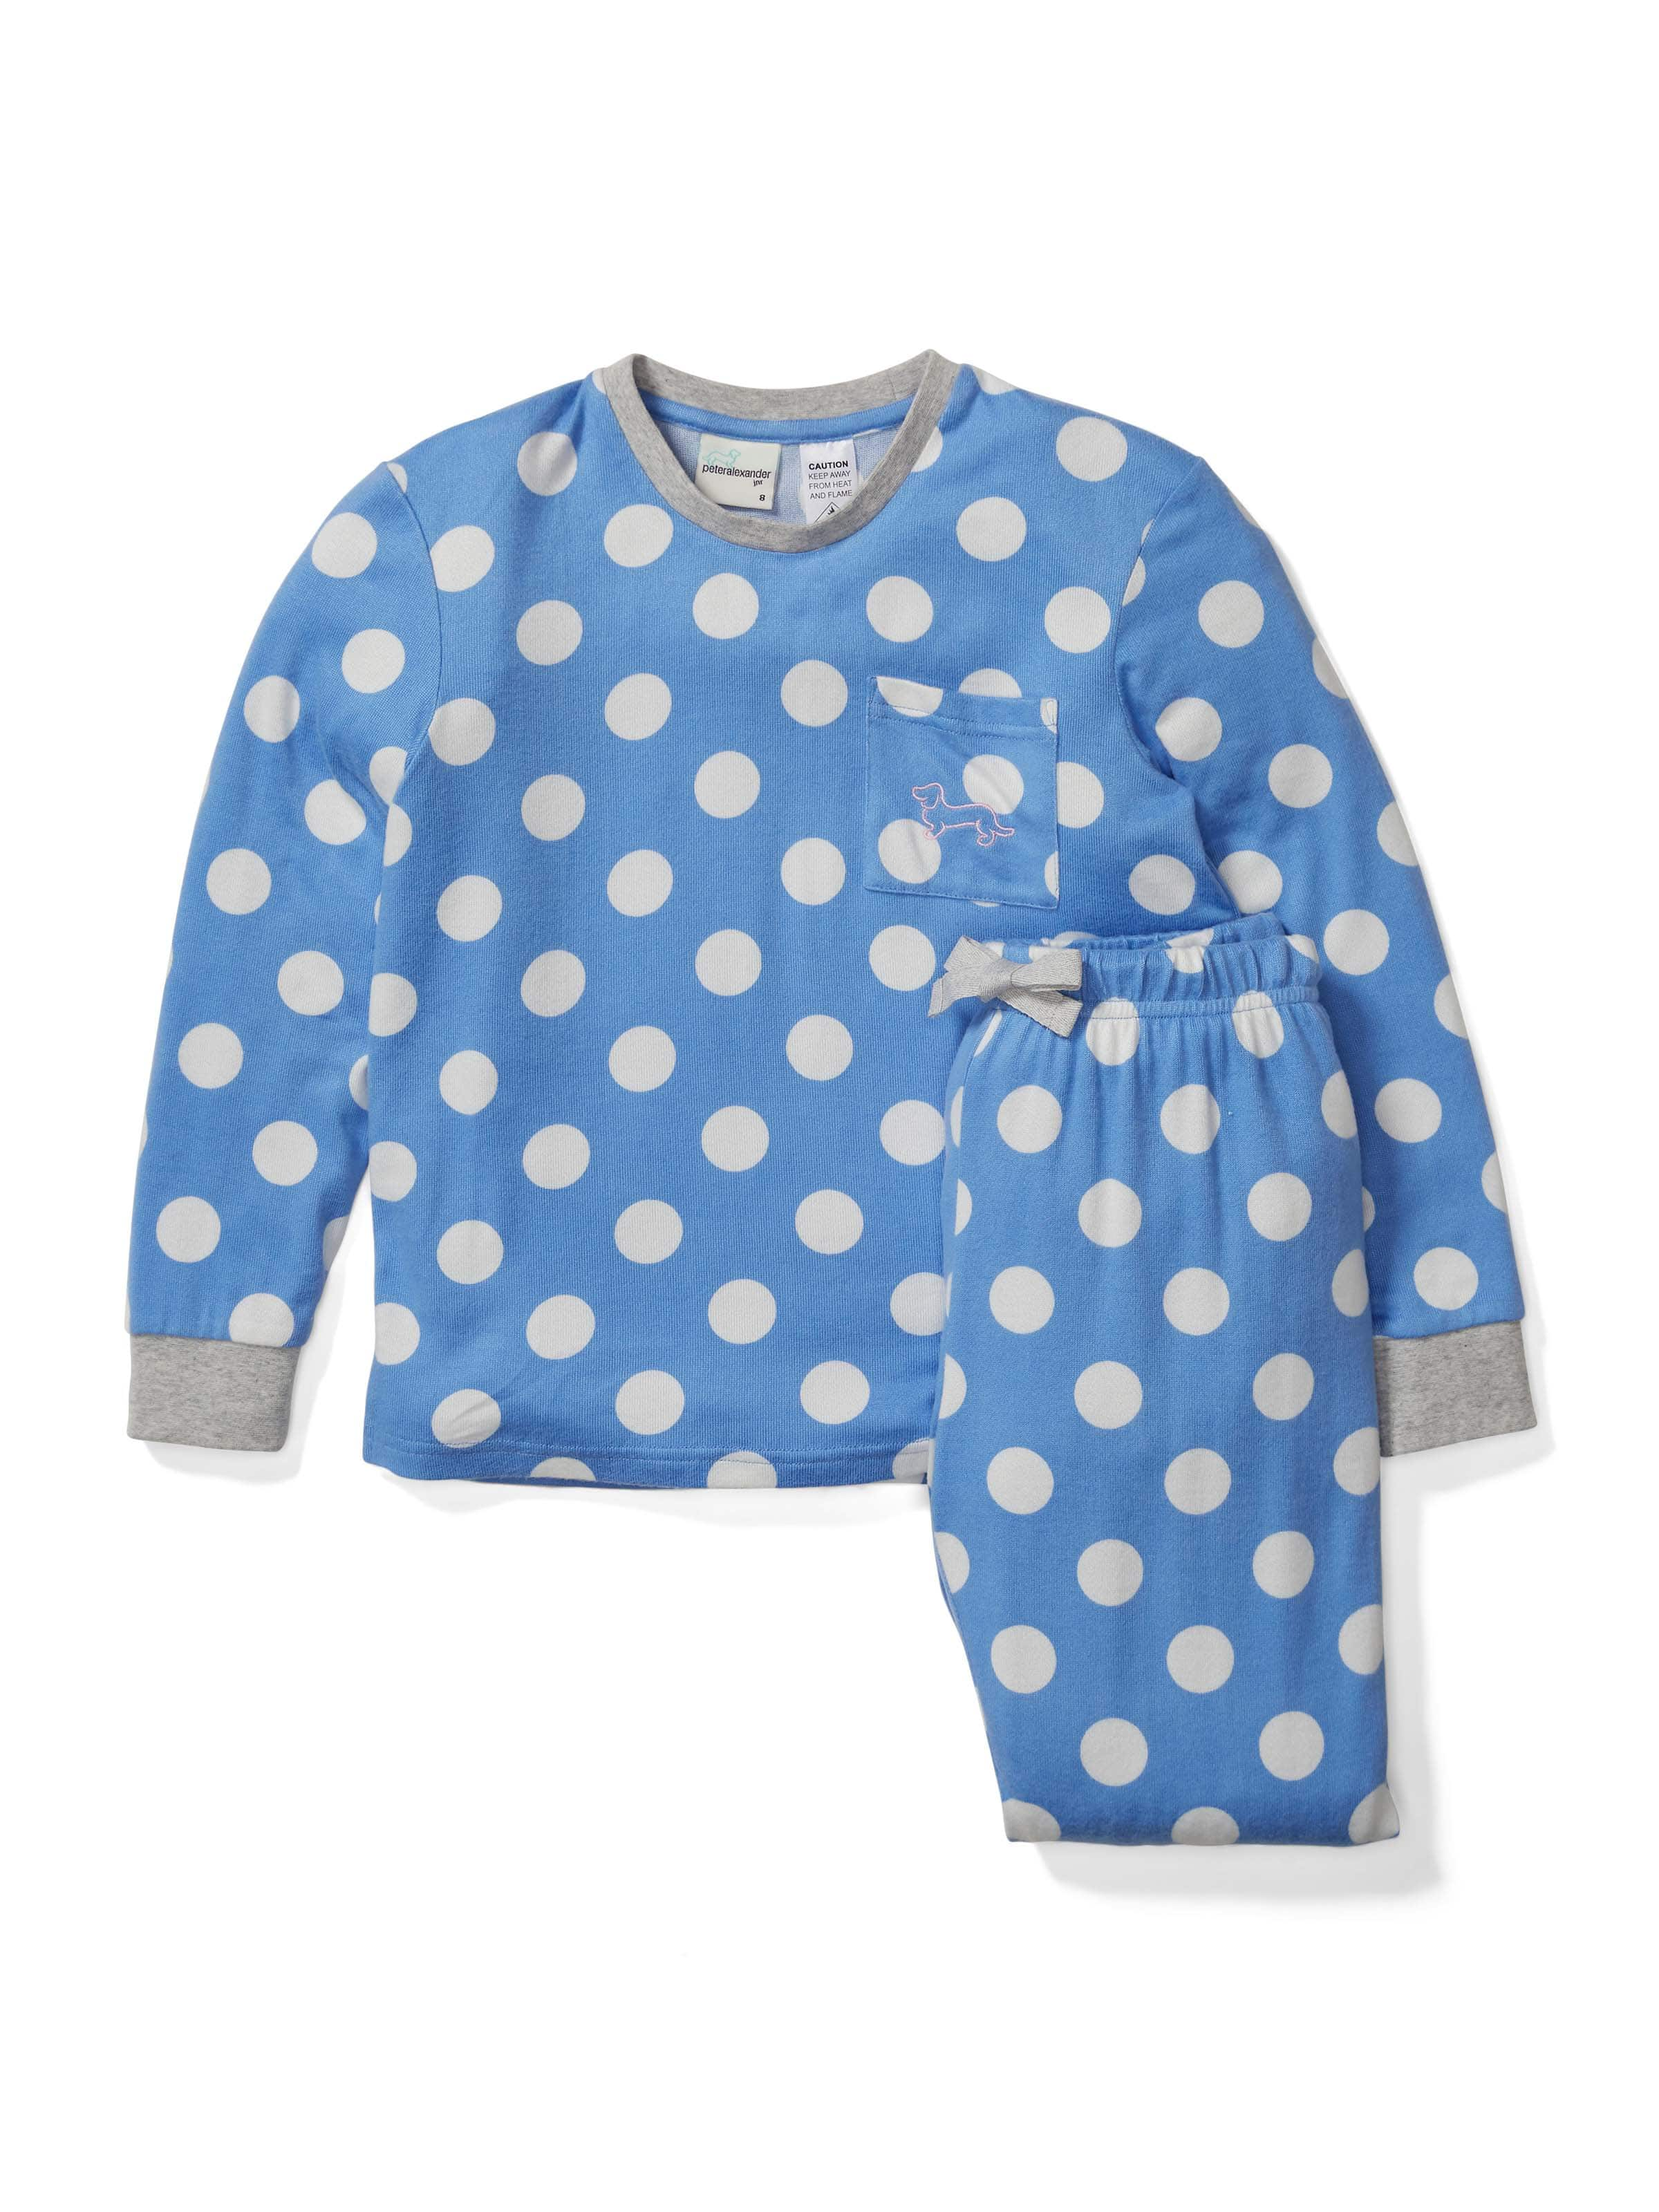 Girls Blue Spot Fuzzy Pj Set